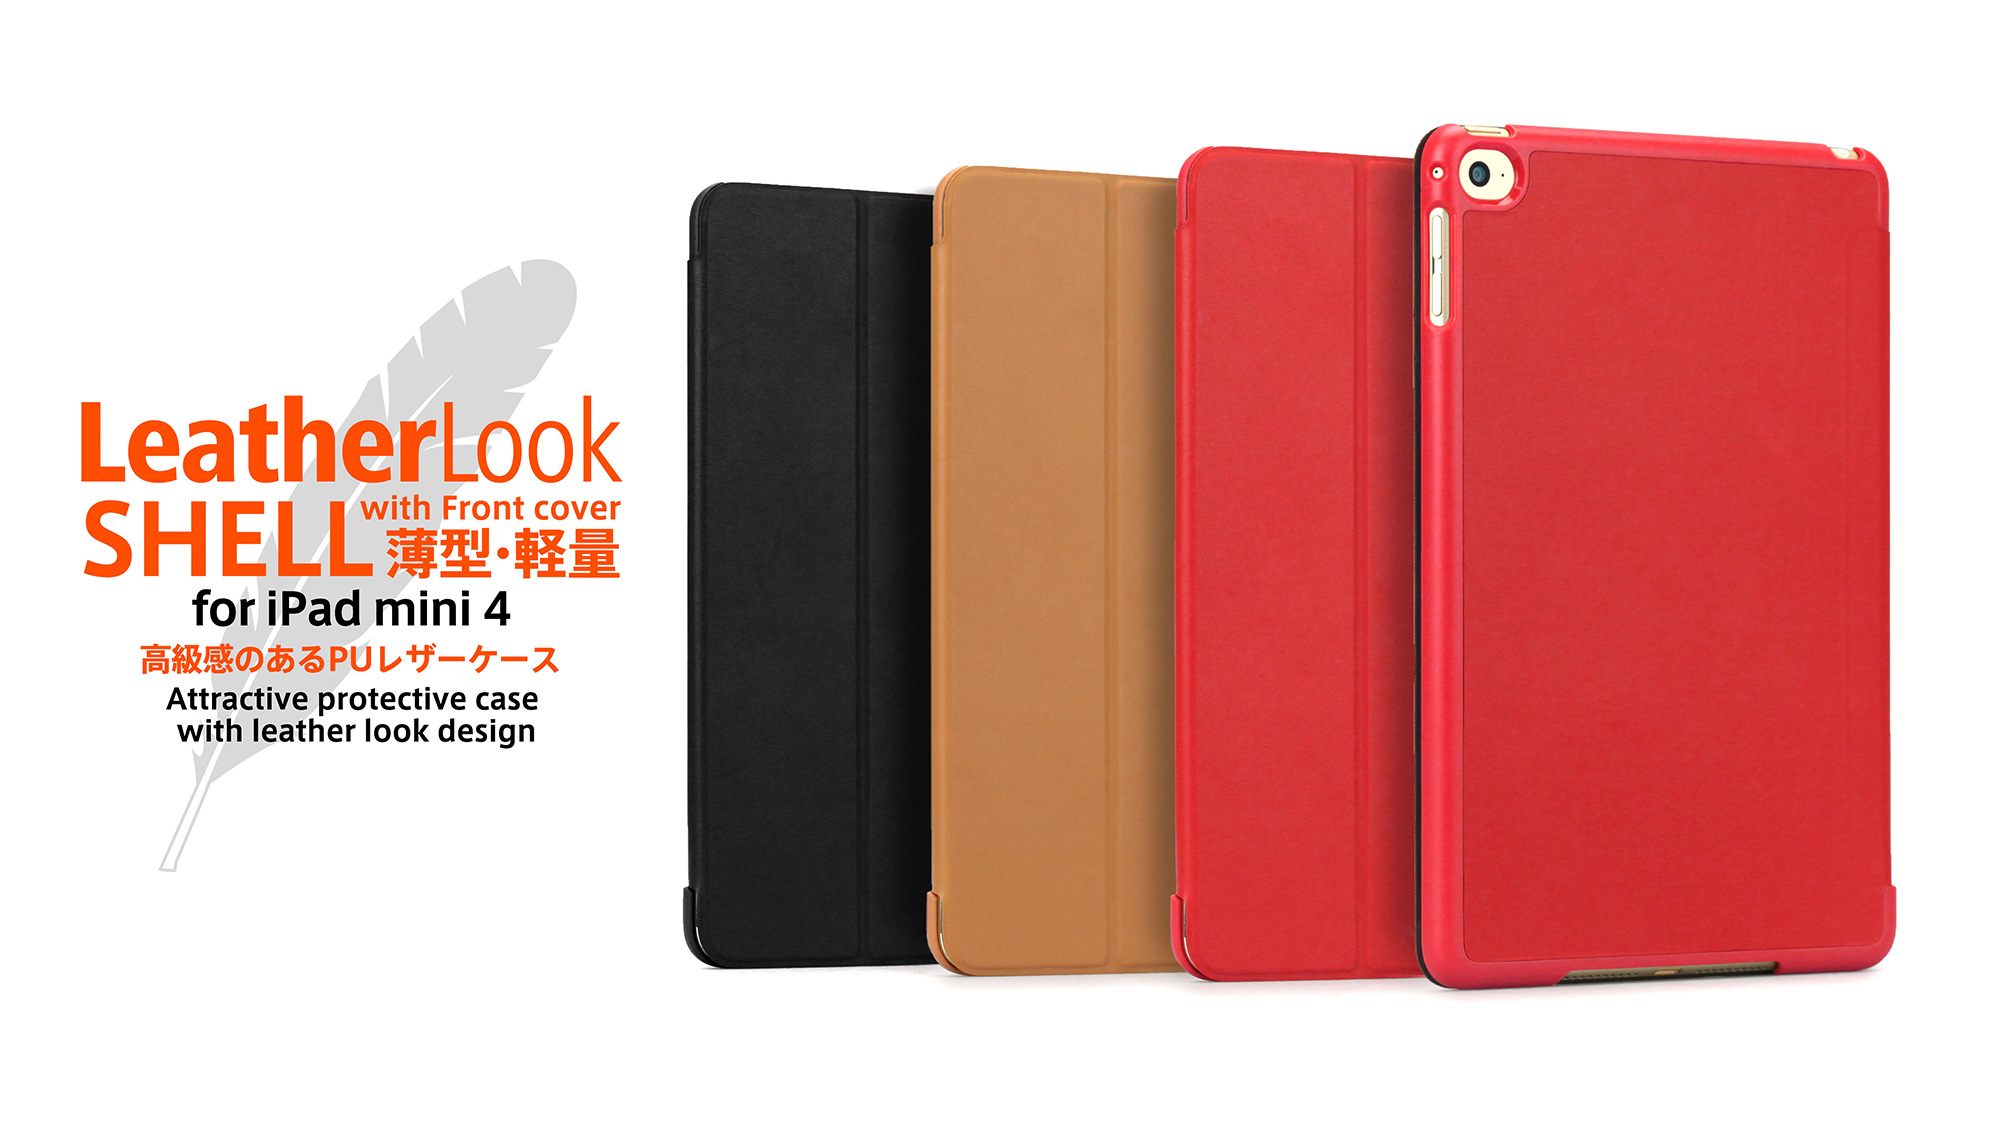 leatherlook shell with front cover for ipad mini 4 tunewear